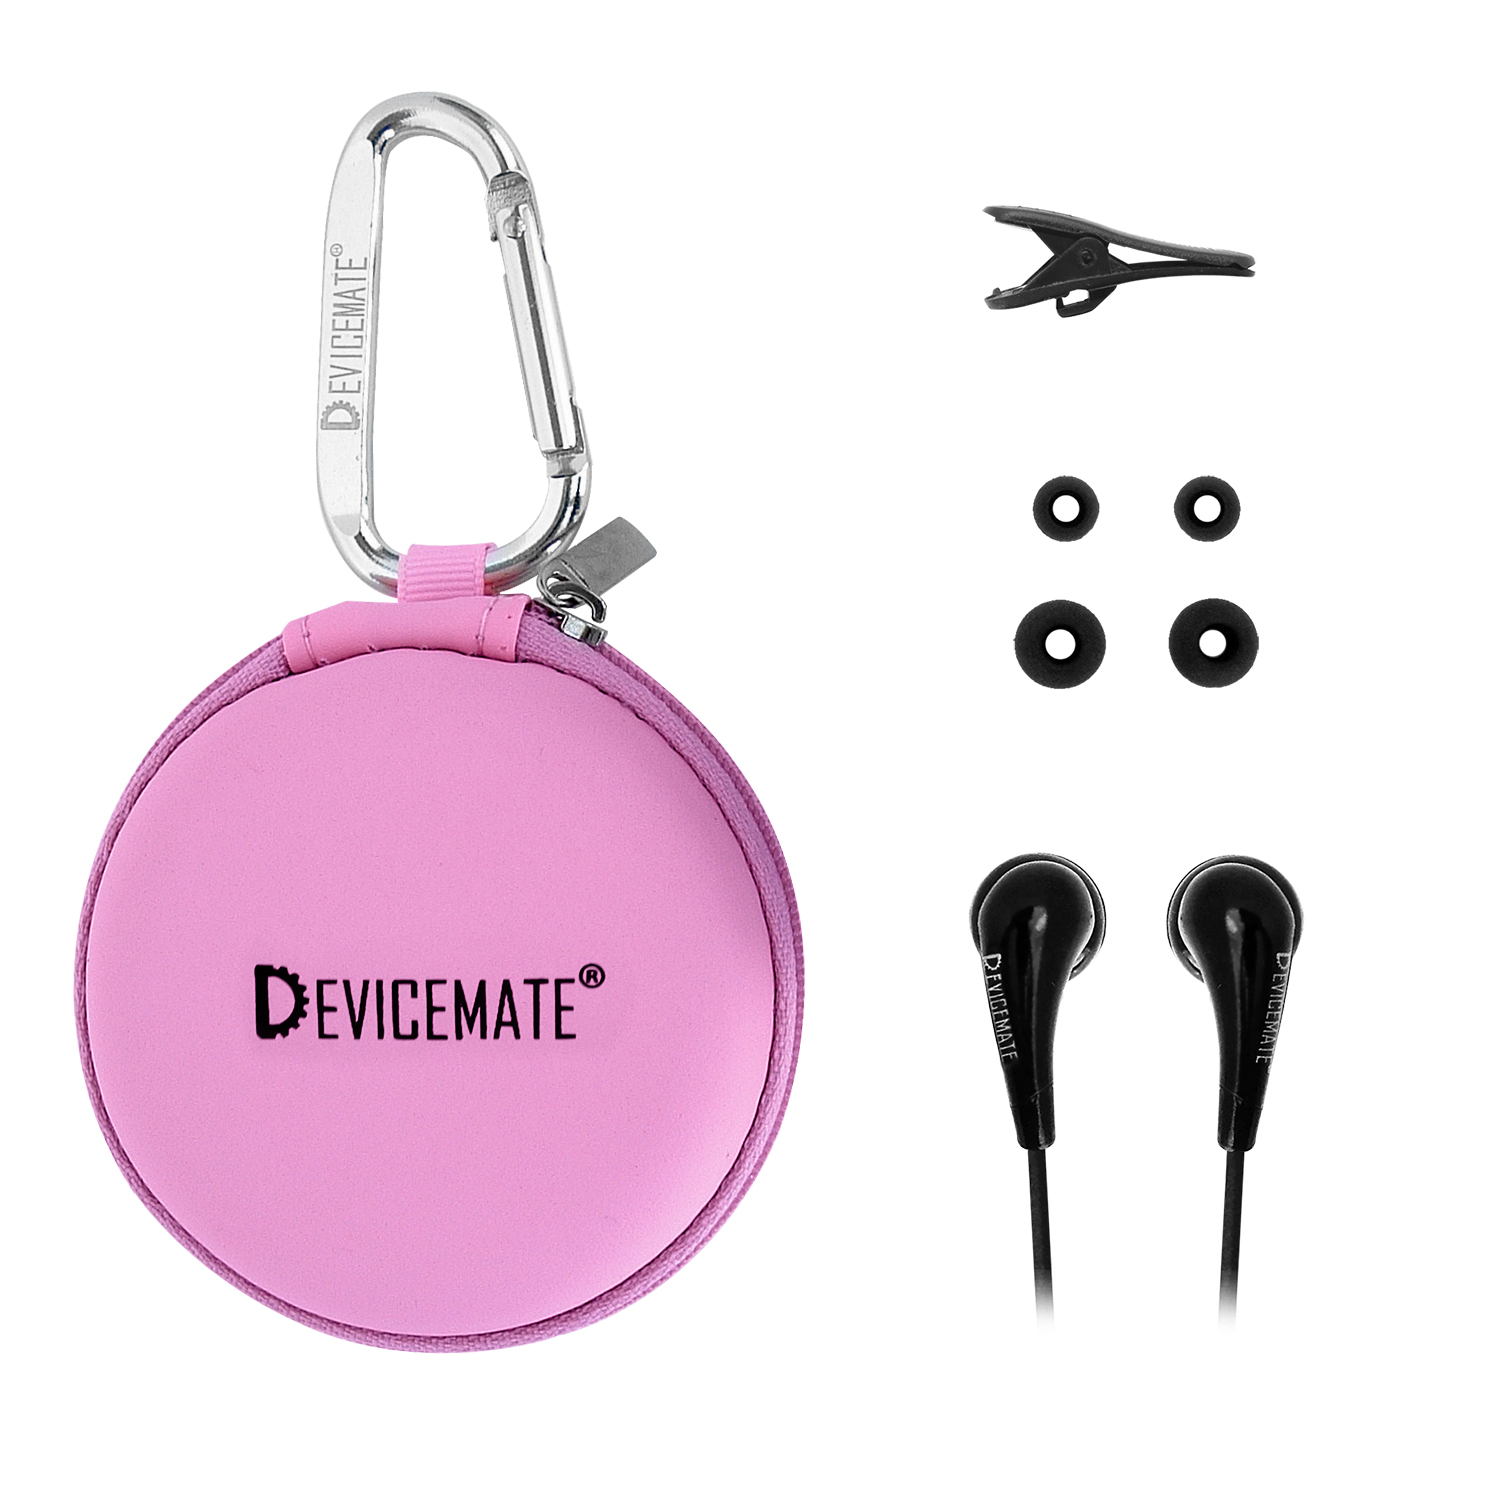 Devicemate SD 255-CPK In-Ear Stereo Earphones [Pink] Case